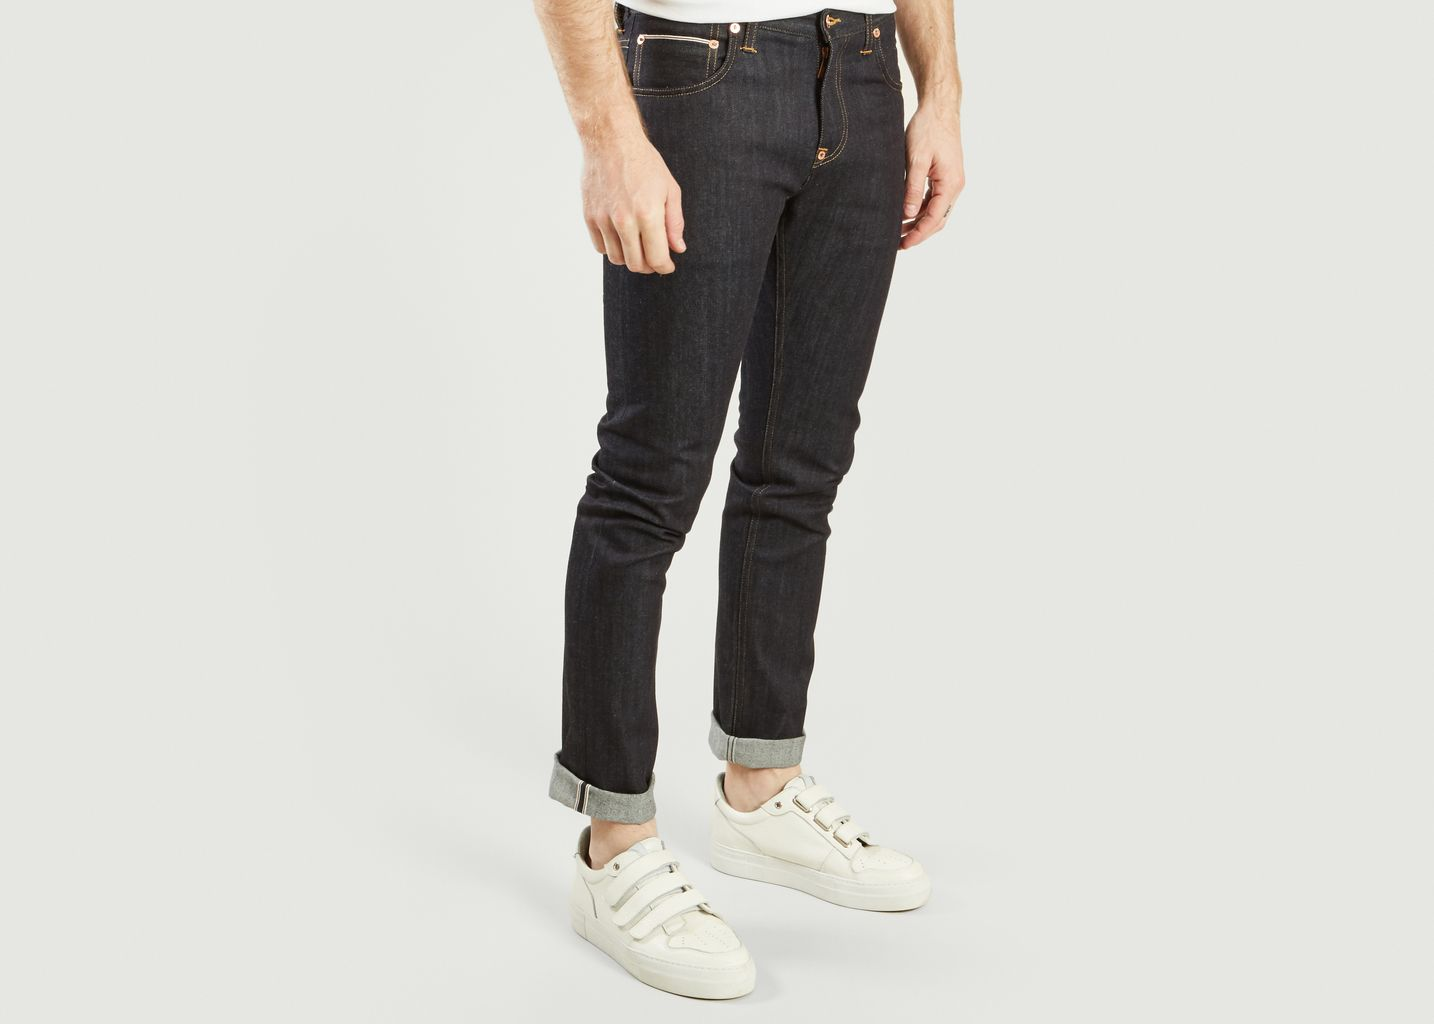 Jean Norris Slim Selvedge - The Cooper Collection